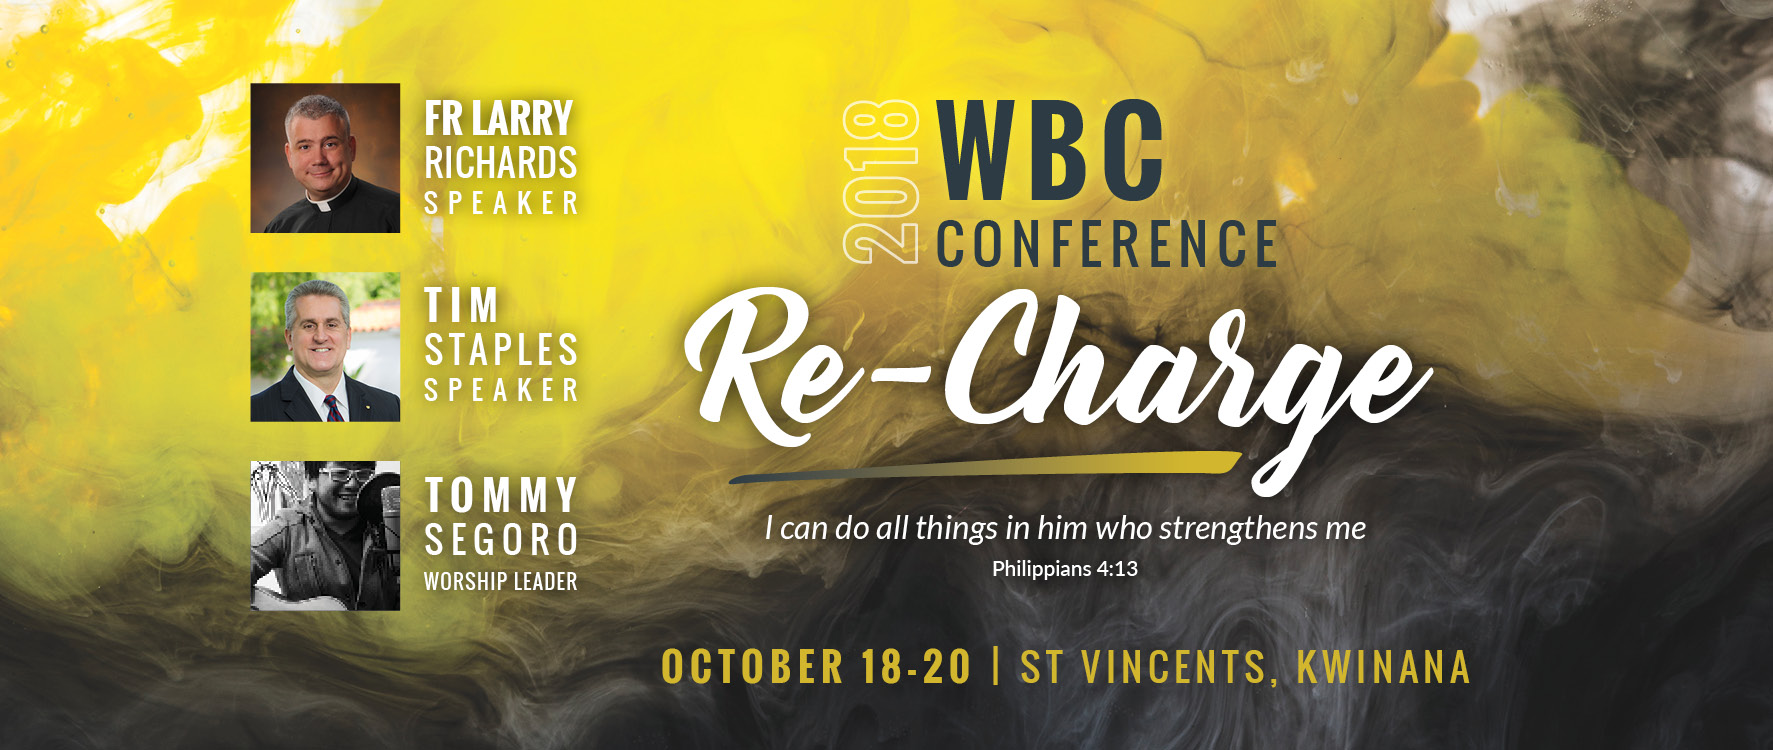 Why be Catholic 2018 Conference: Re-Charge